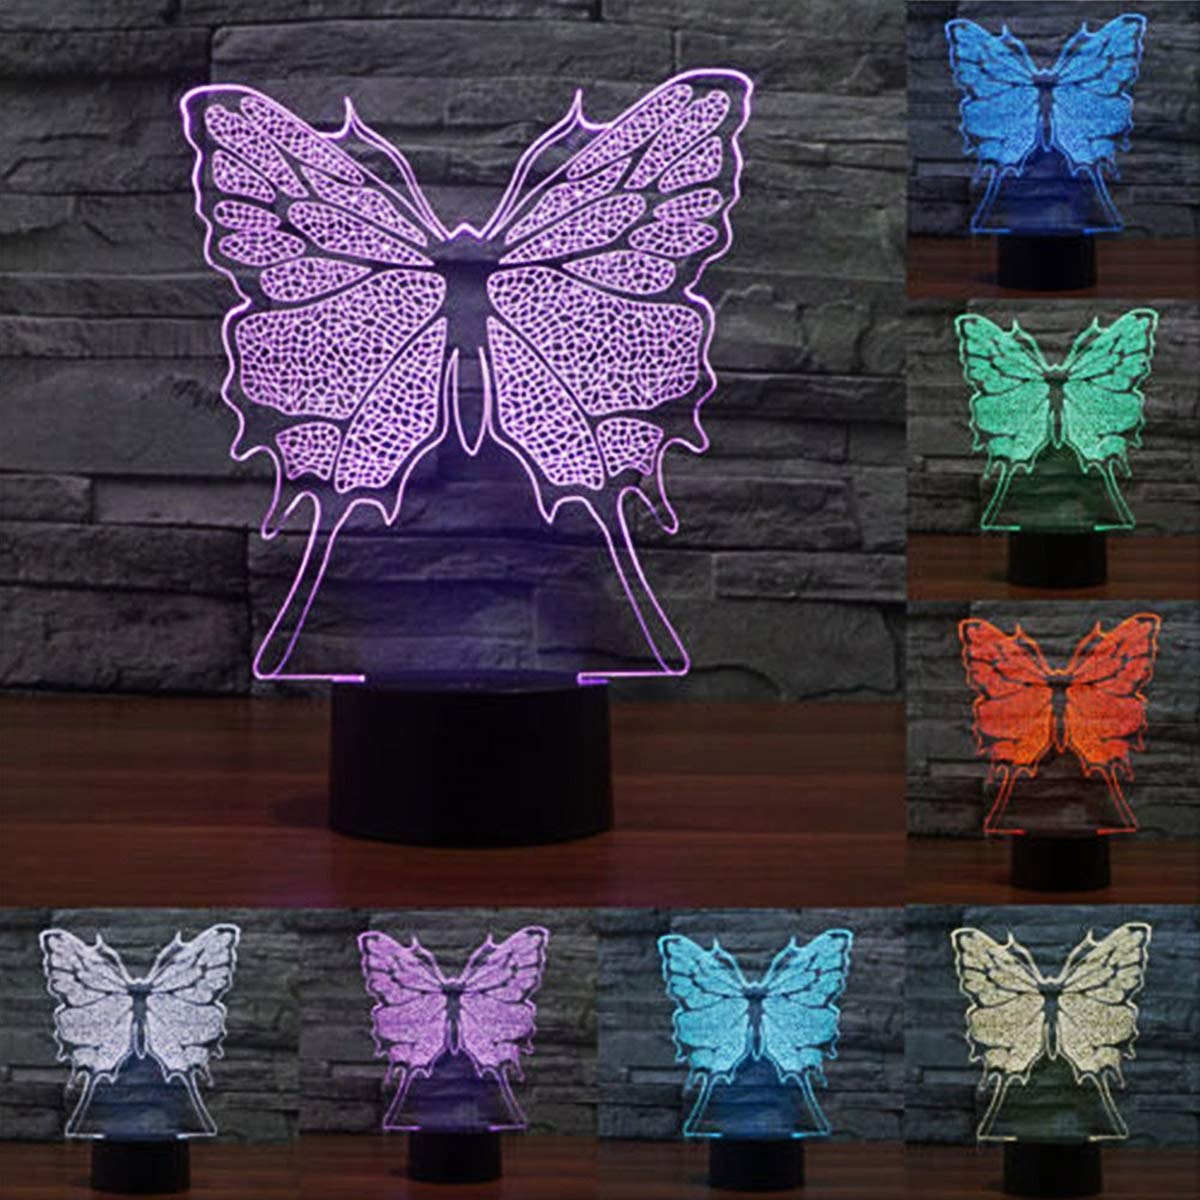 3D Led Illusion Lamp Dinosaur Butterfly /& Shark Desk Night Light-3 Model and 7 Color Change Decor Lamp with Remote Control-Best Gift Toys for Kids Lhippo